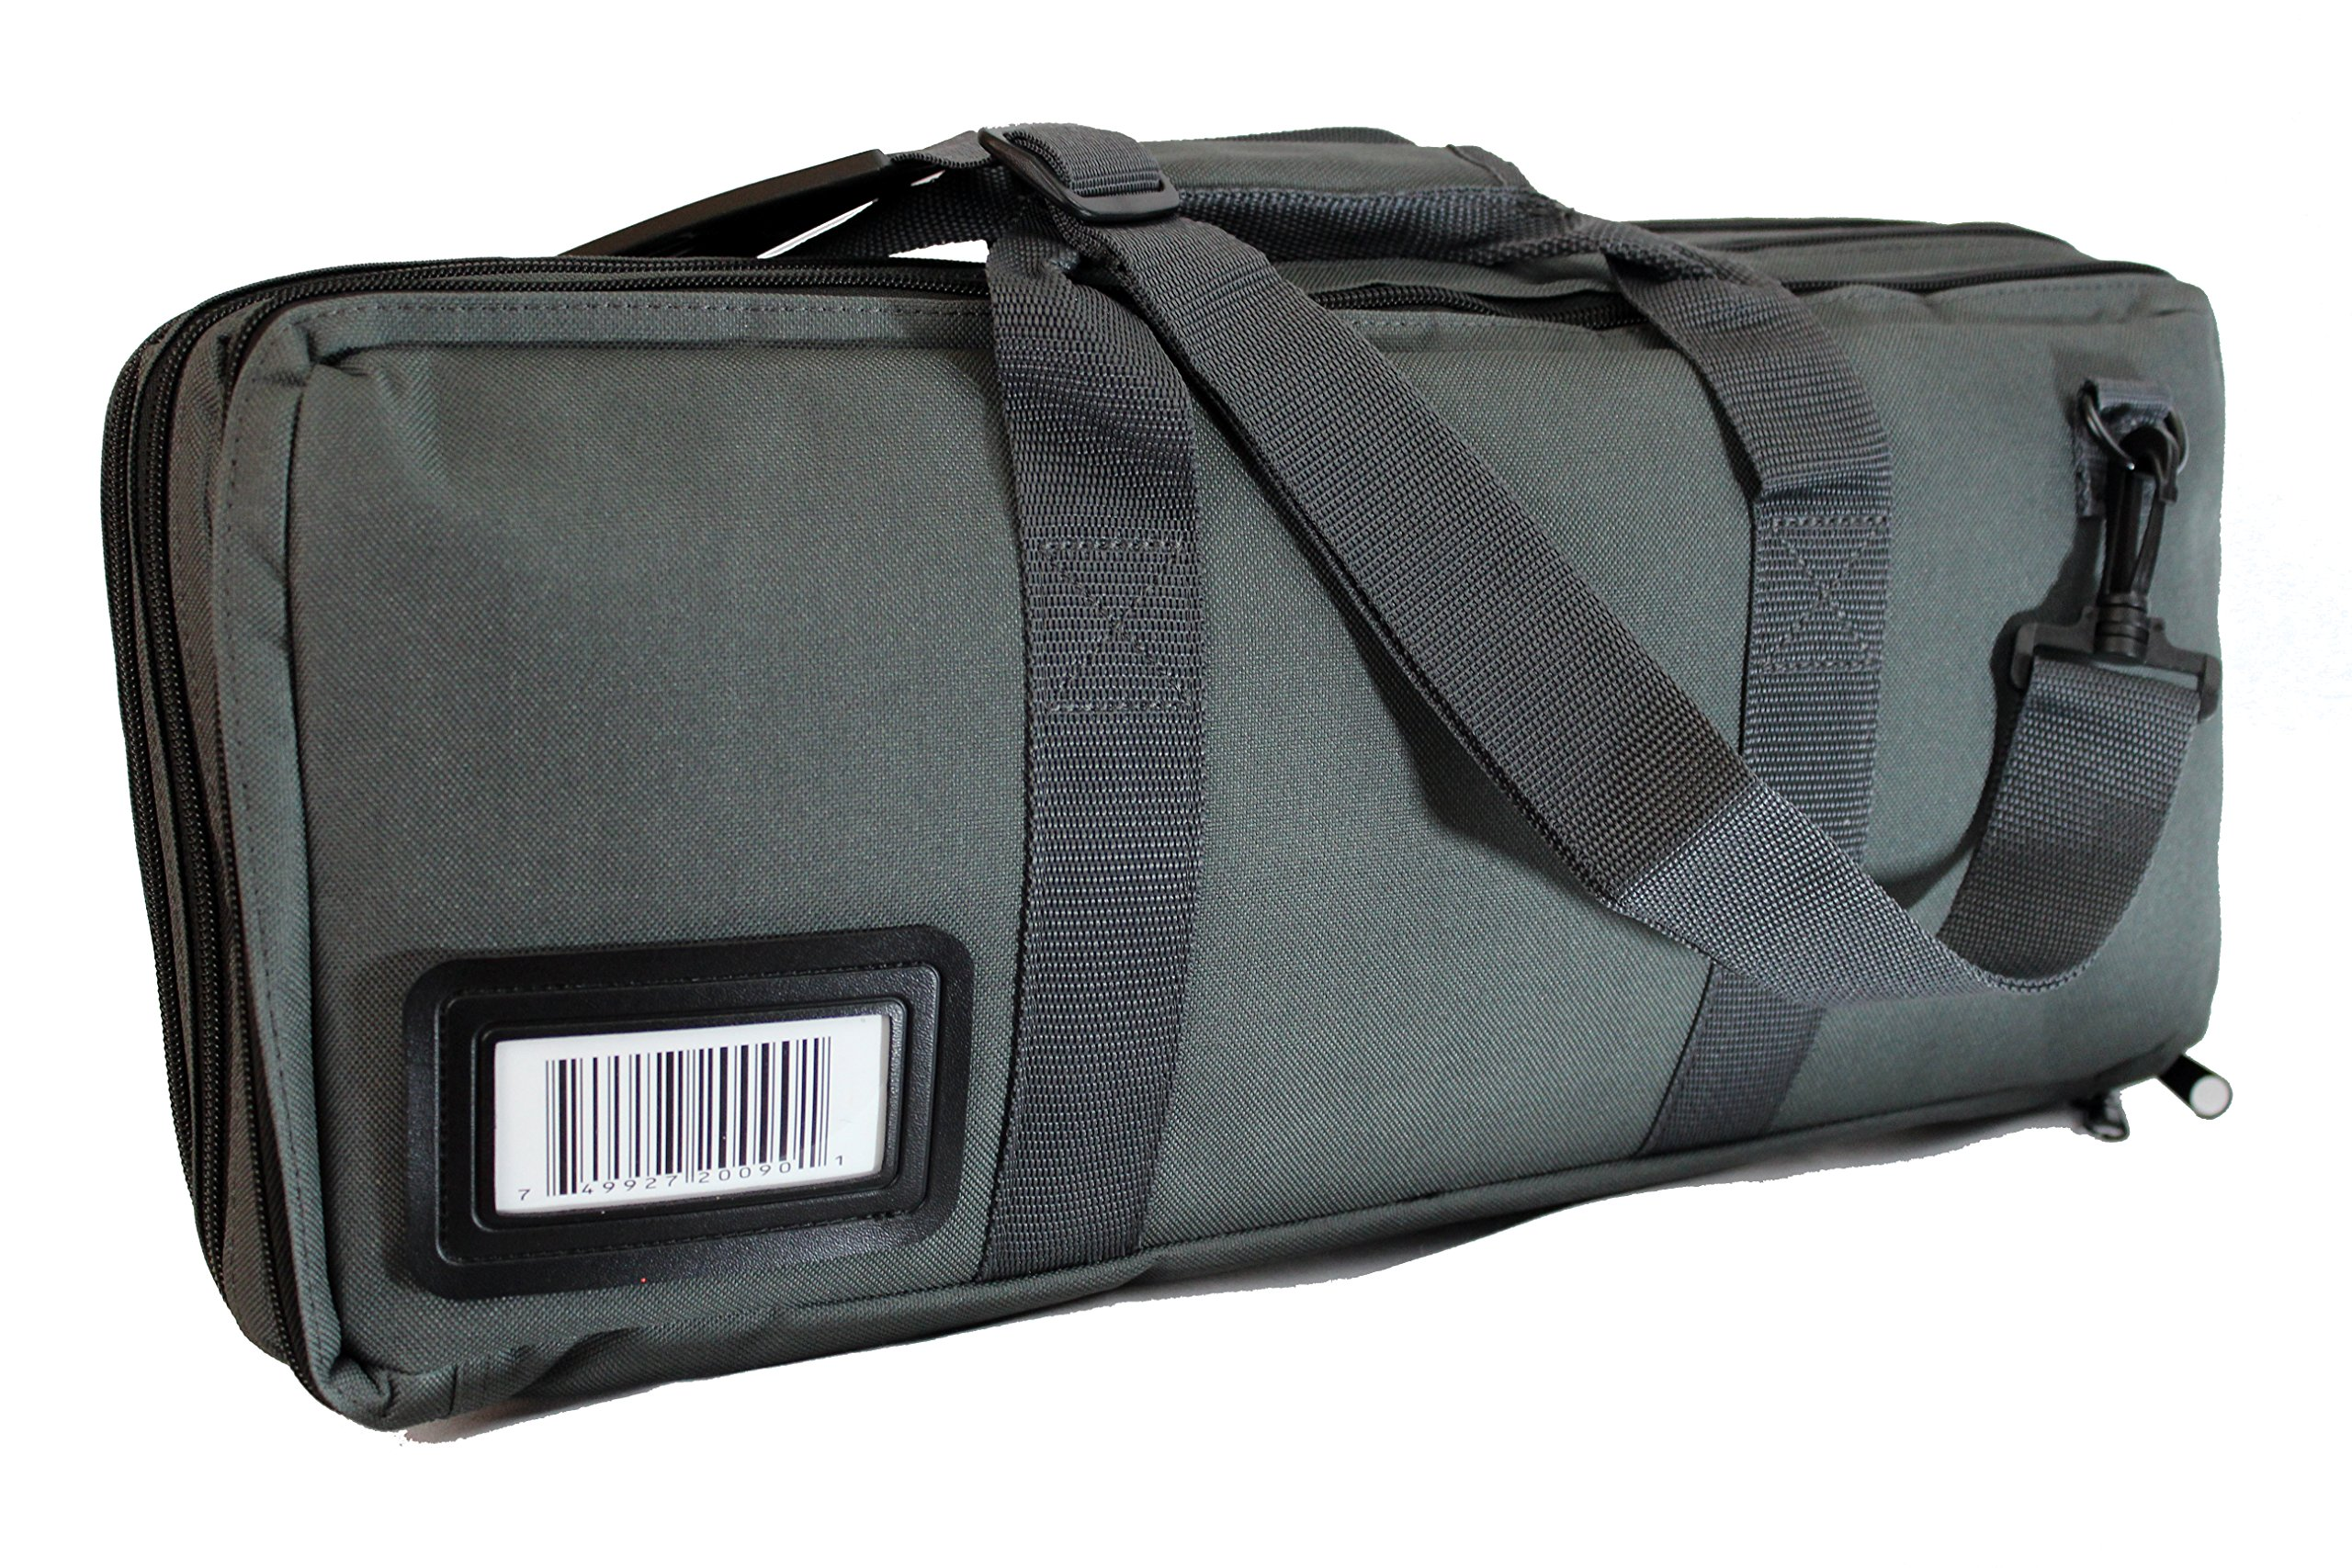 The Ultimate Edge 2001-EDGT Deluxe Chef Knife Case, Graphite by The Ultimate Edge (Image #2)